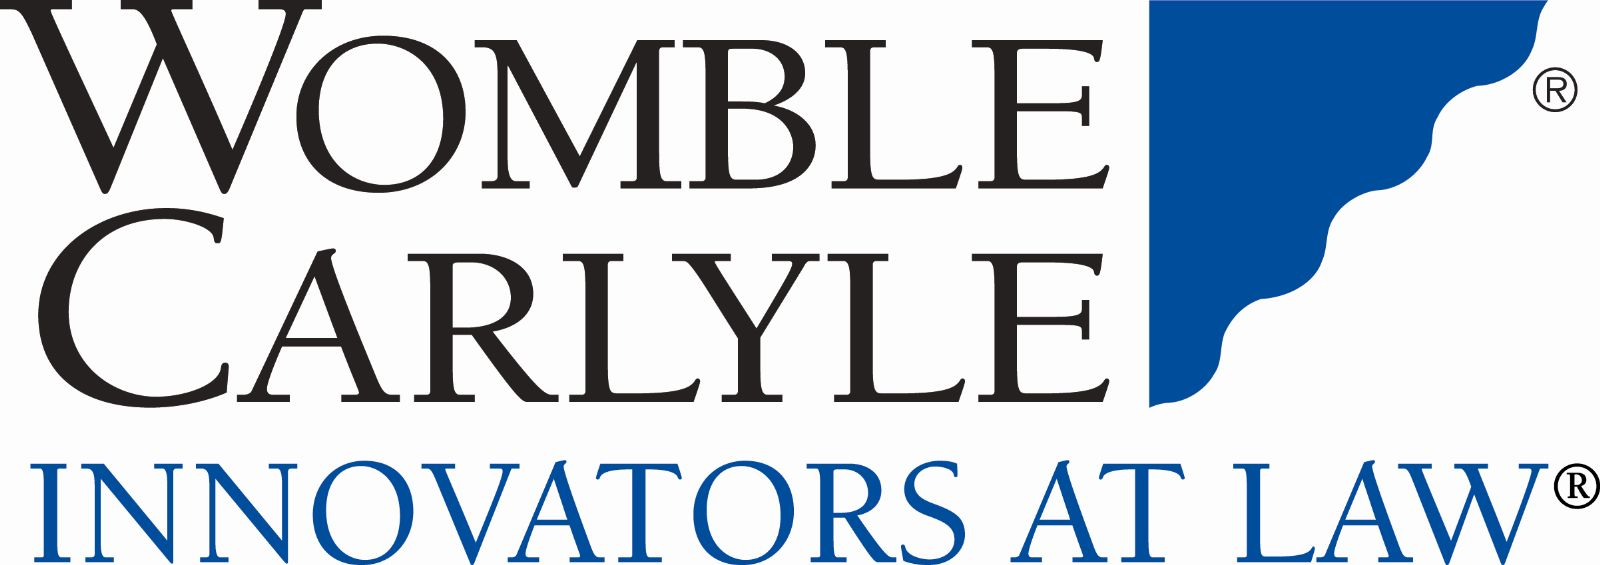 Womble Carlyle law firm logo